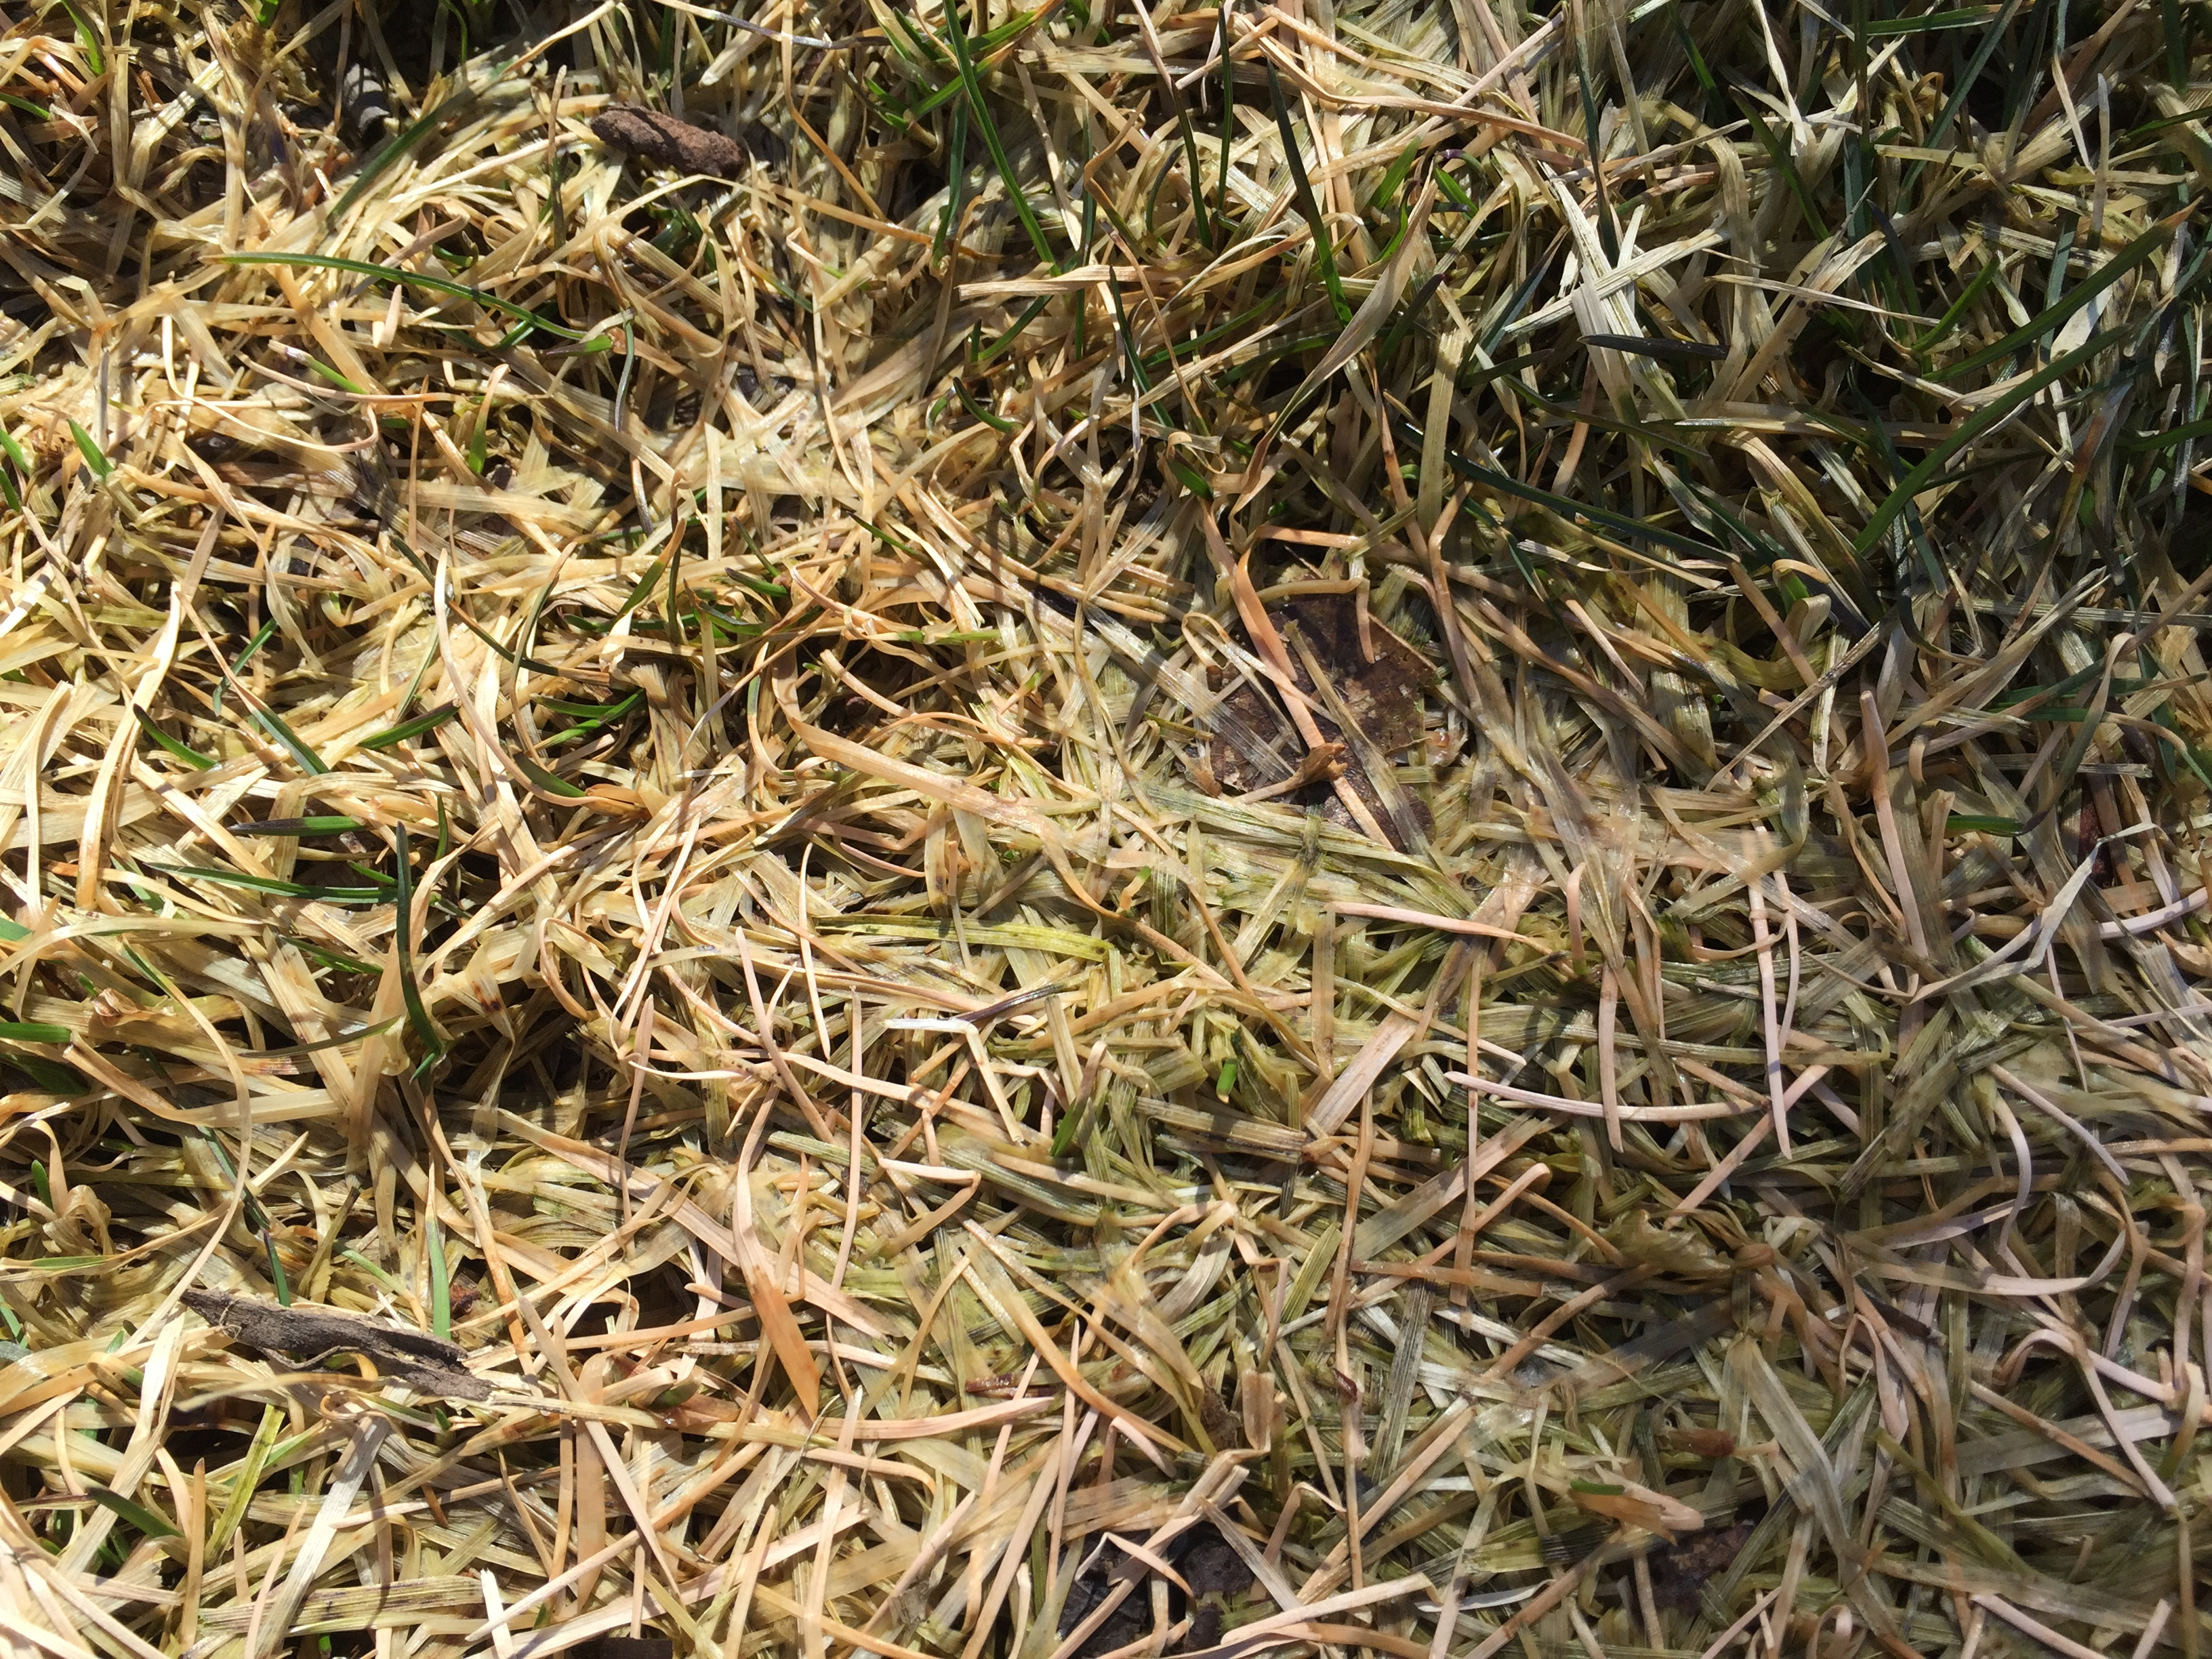 Lawn Care: When It Comes To Early Spring Lawn Care, Donu0027t Start Too Early.  Allow The Lawn To Completely Dry Out And Turn Completely Green Before  Bringing ...